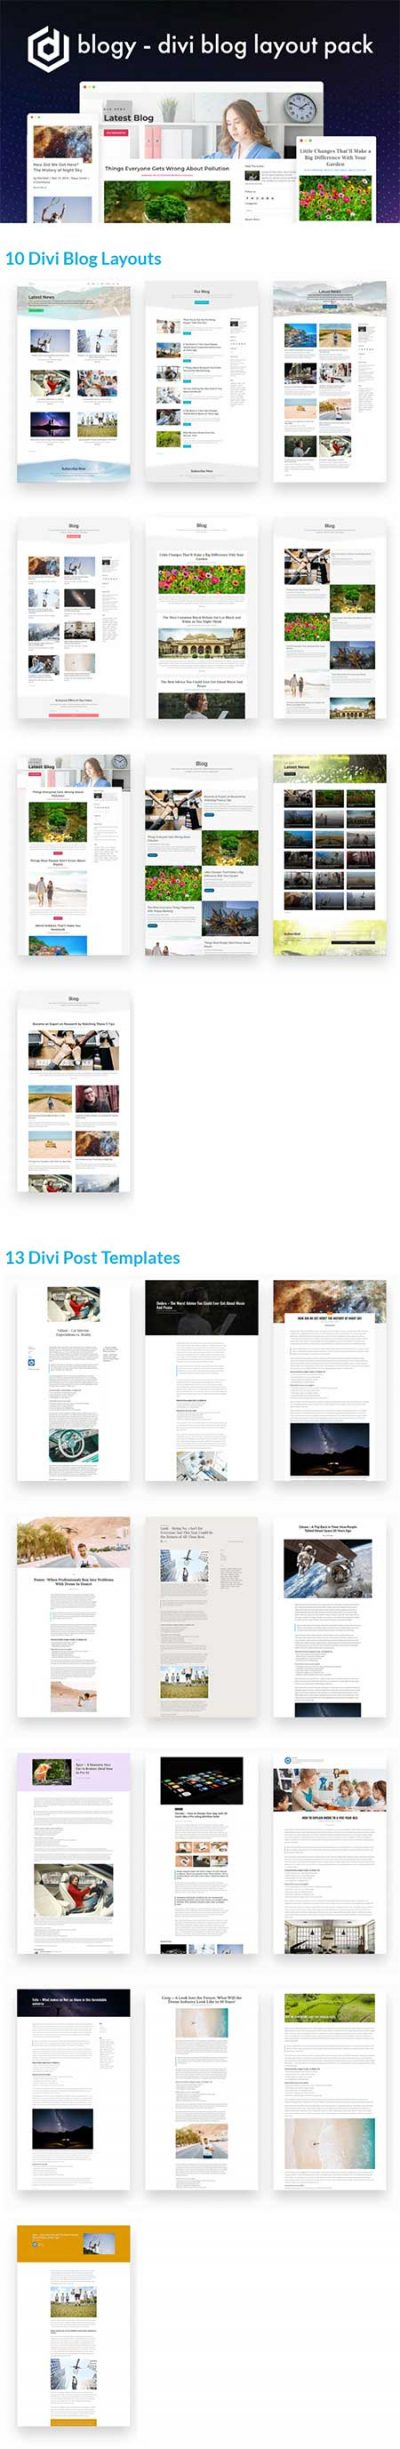 Divi blog page and post layout pack